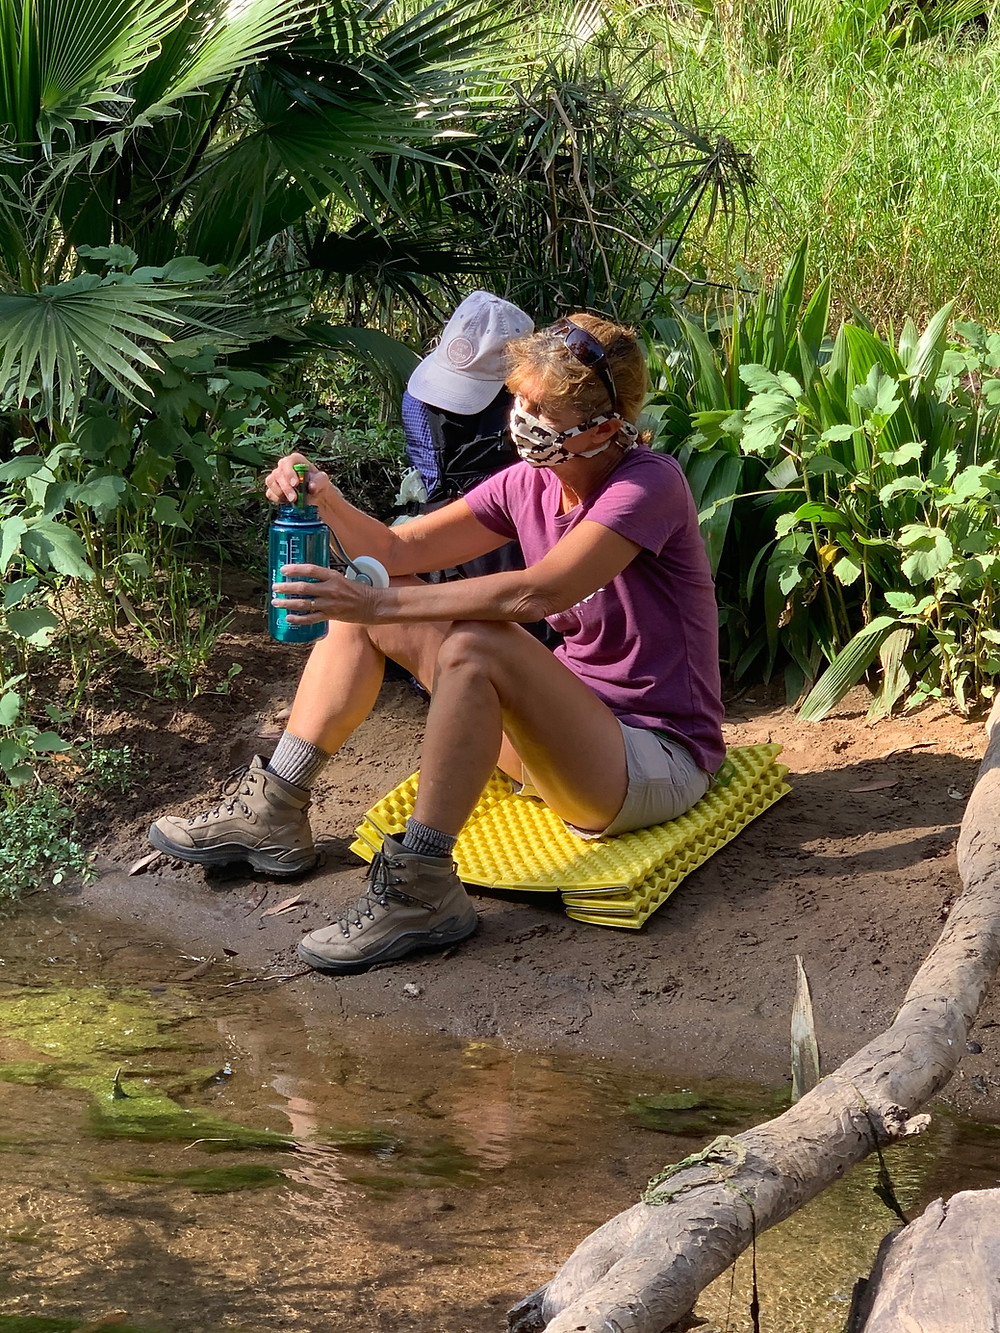 Backpacker Filtering Water with Face Mask